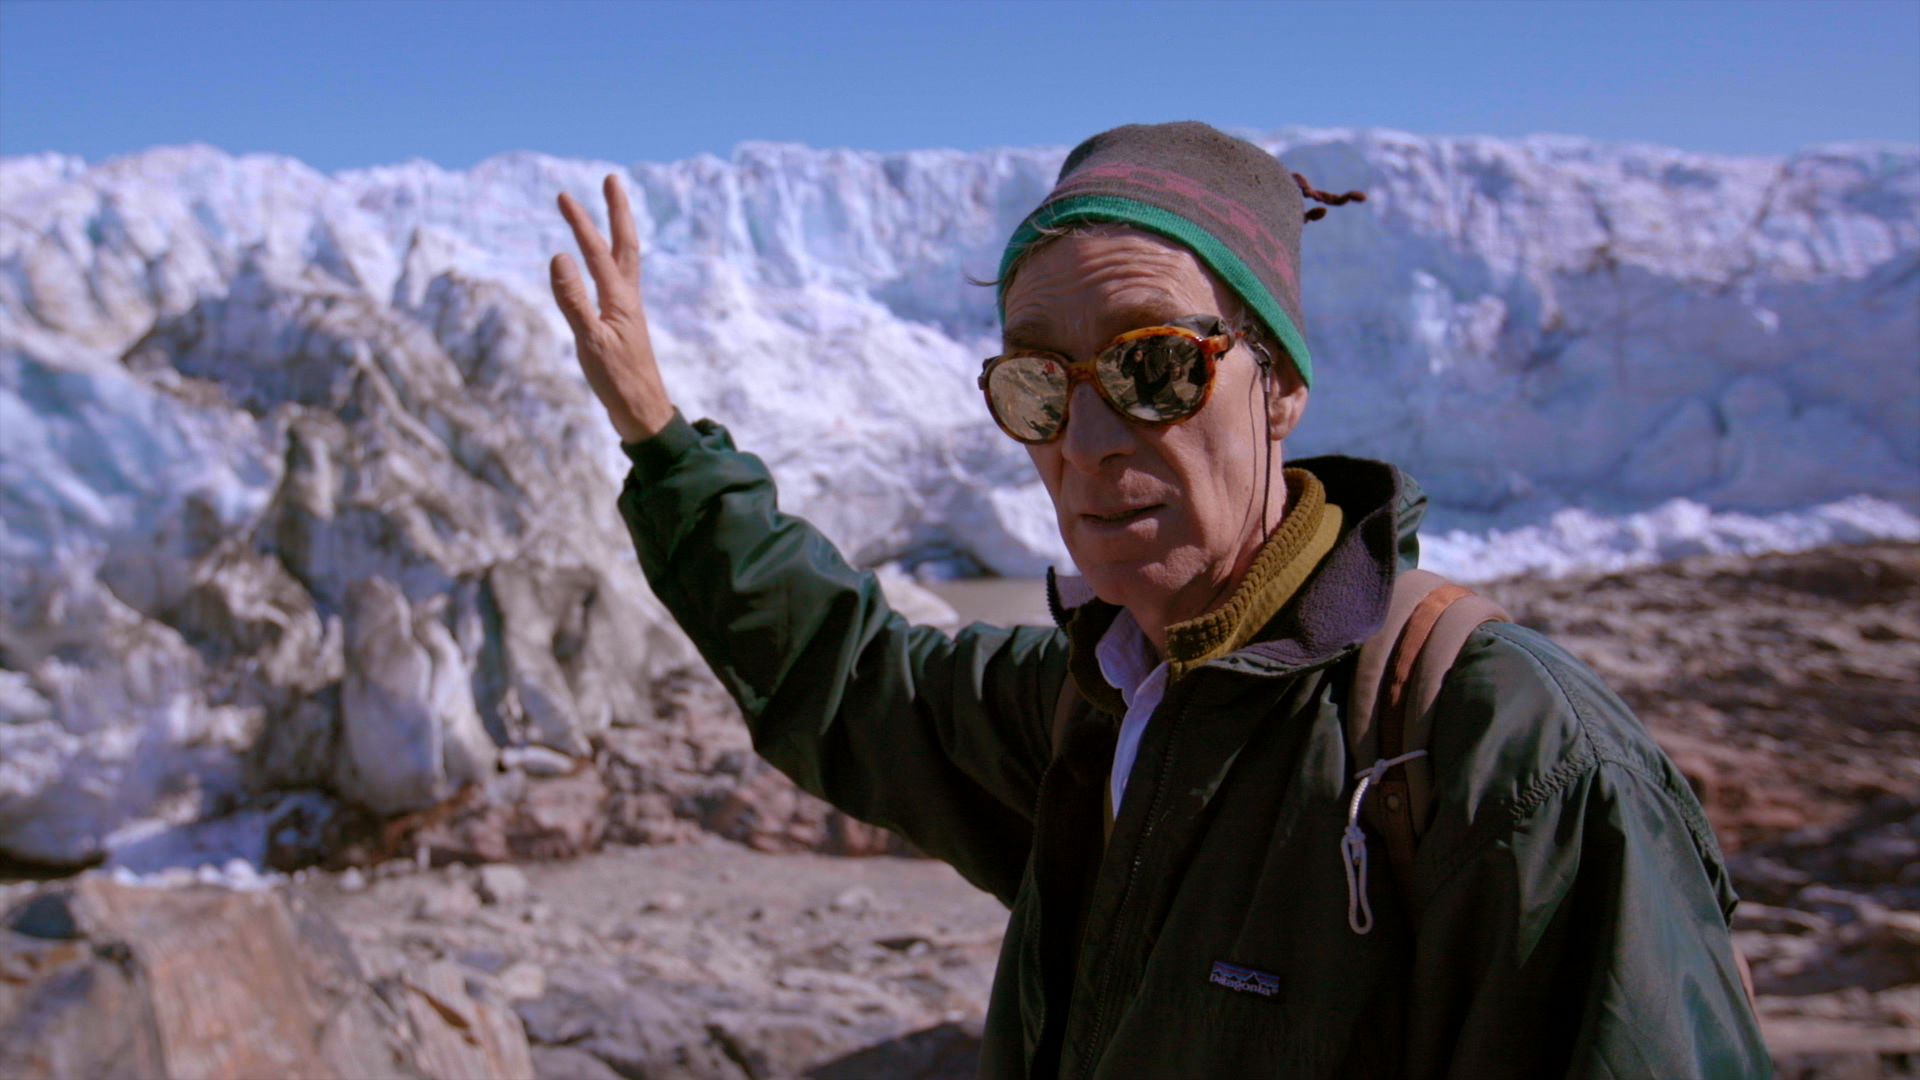 Bill Nye: Science Guy - Should global climate change be discussed at the dinner table?